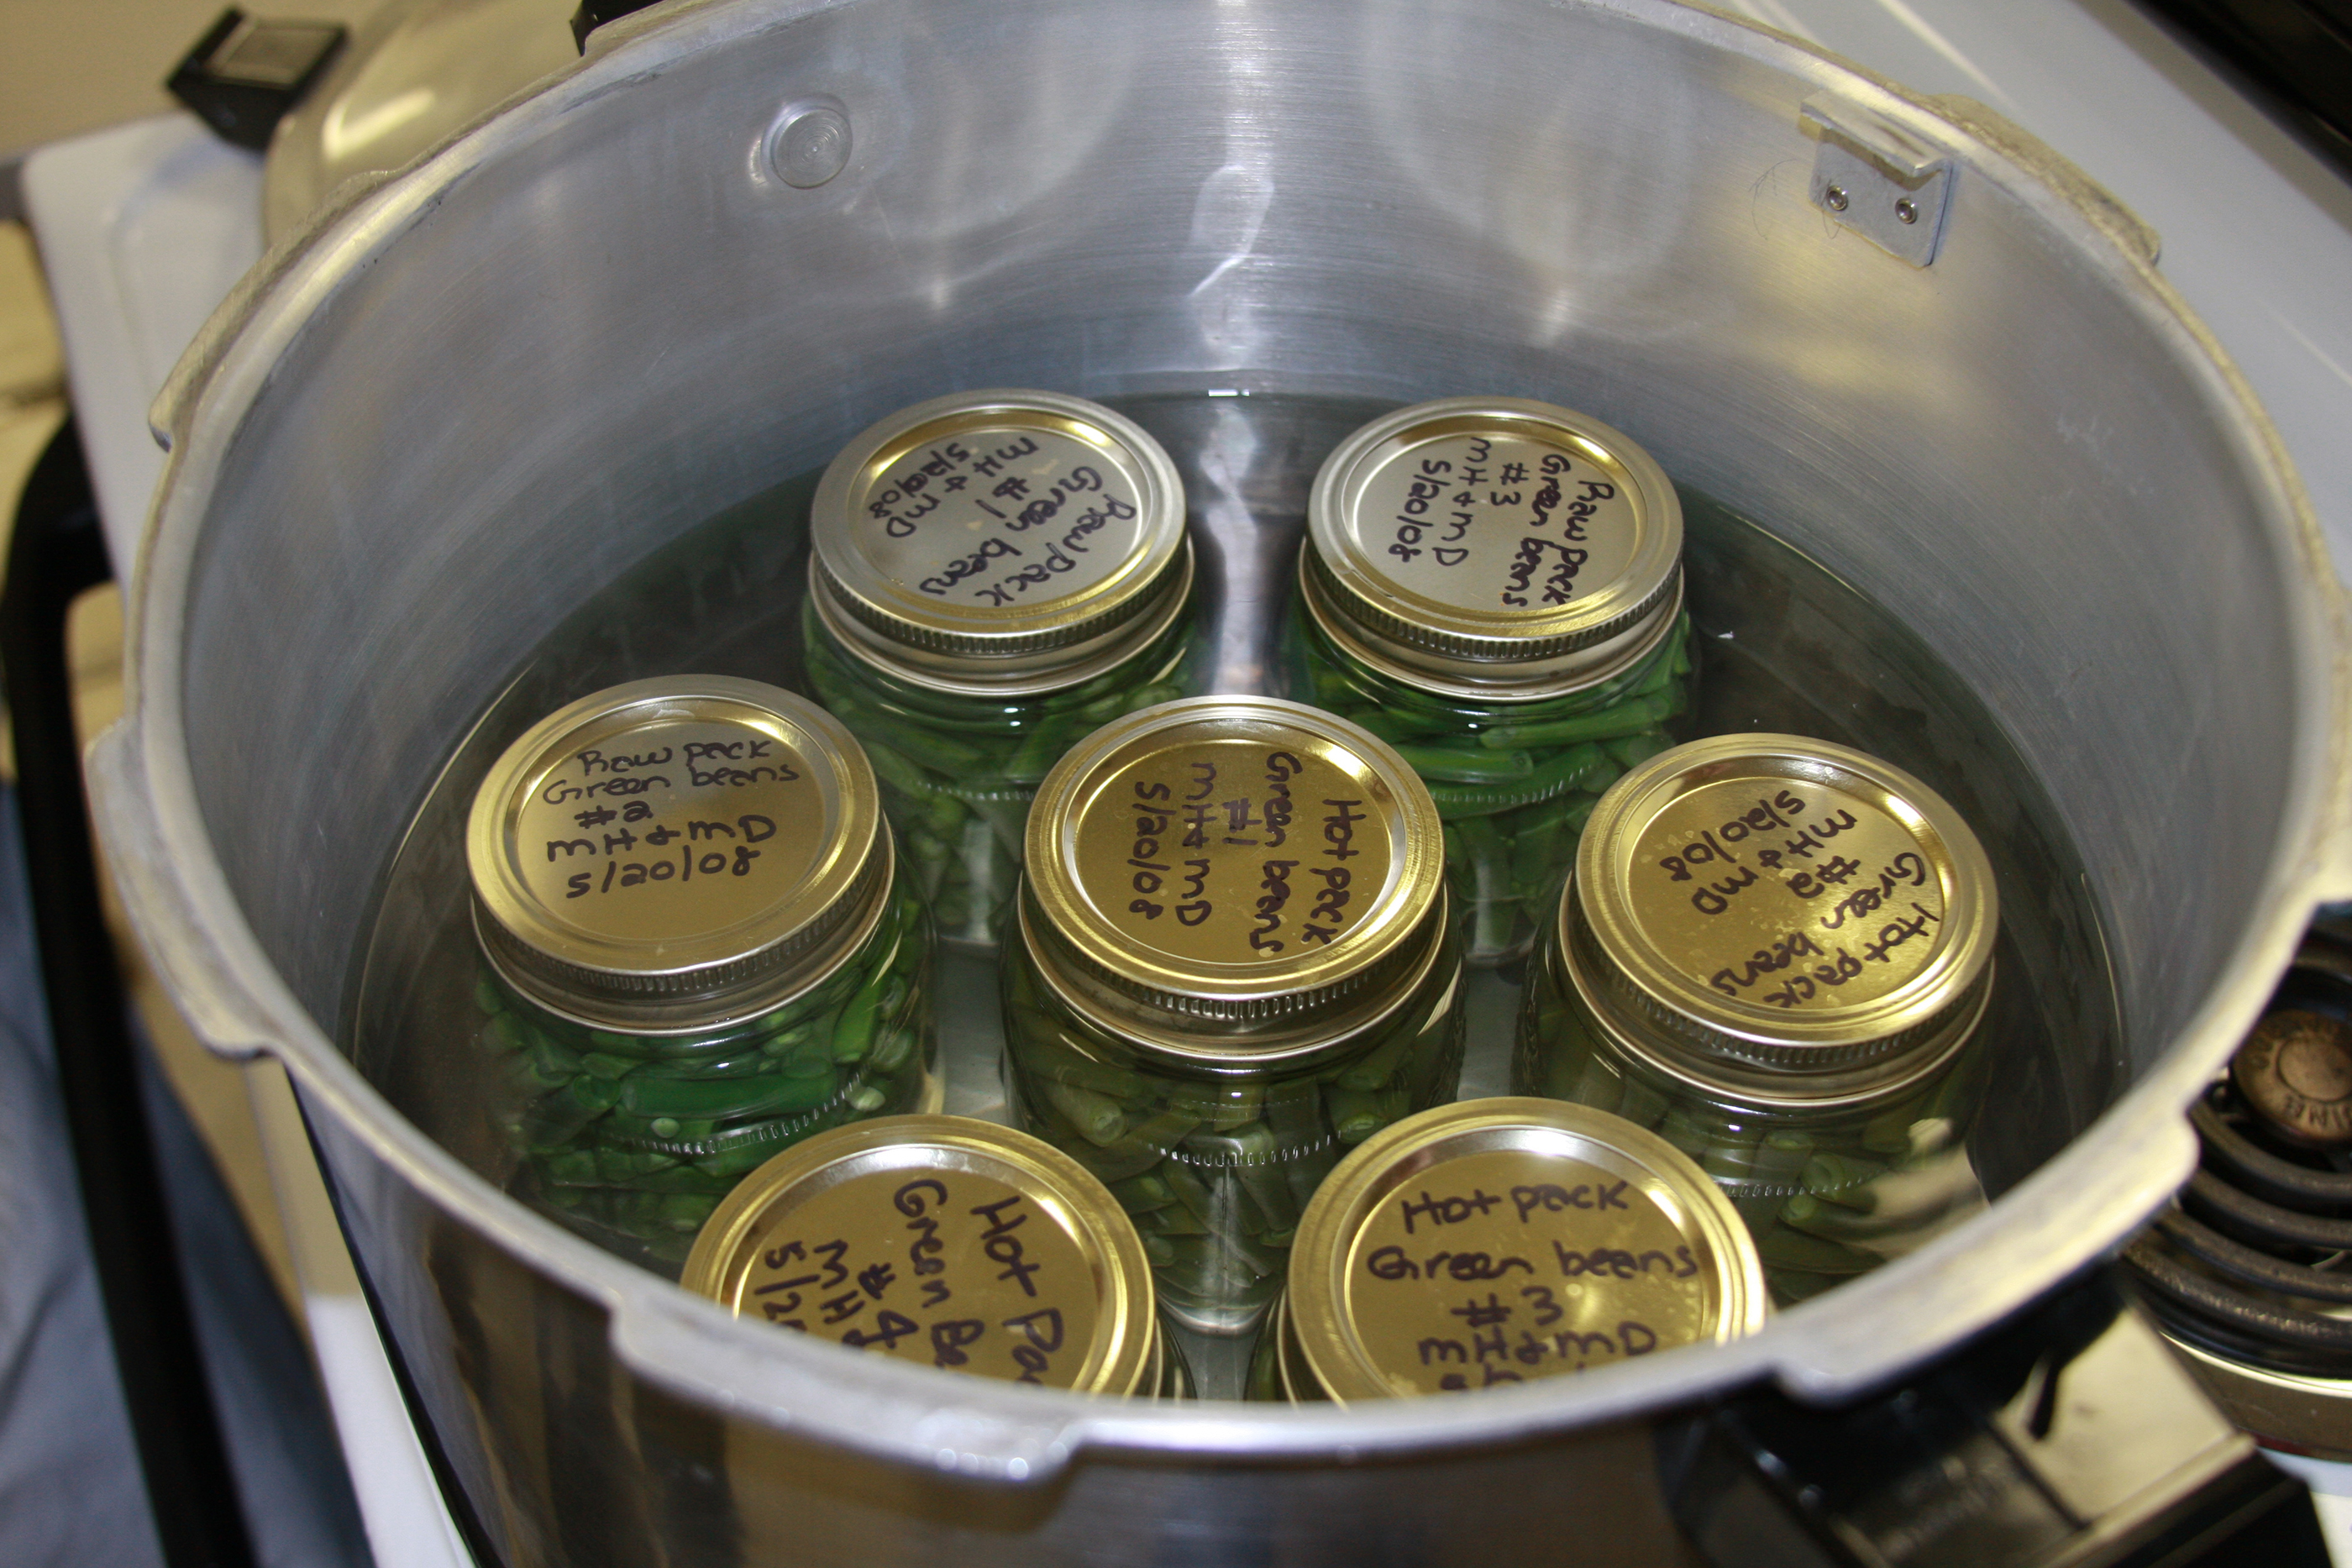 Preparing your kitchen before you harvest can simplify the process of canning your summer bounty.